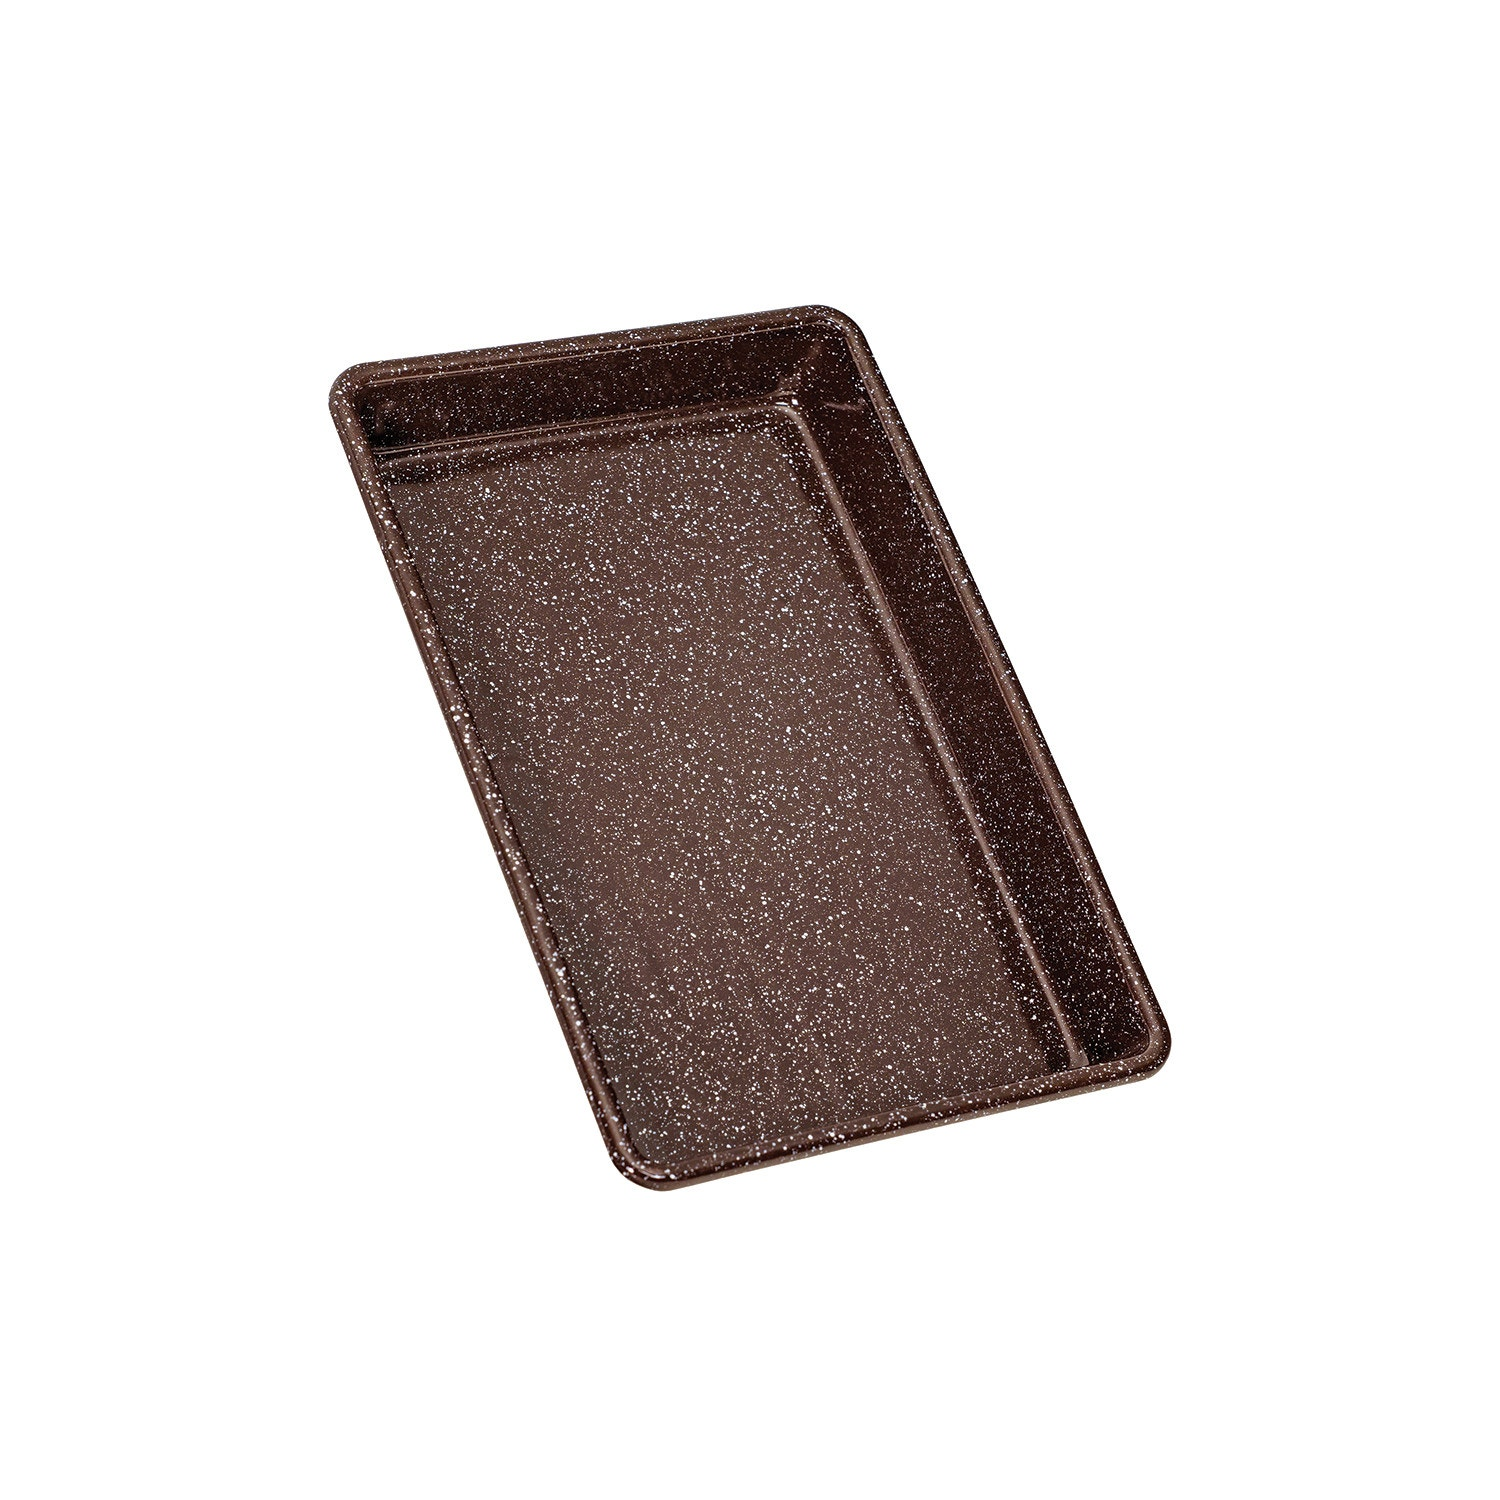 Granite Ware Brownie Pan, 11″ x 7″